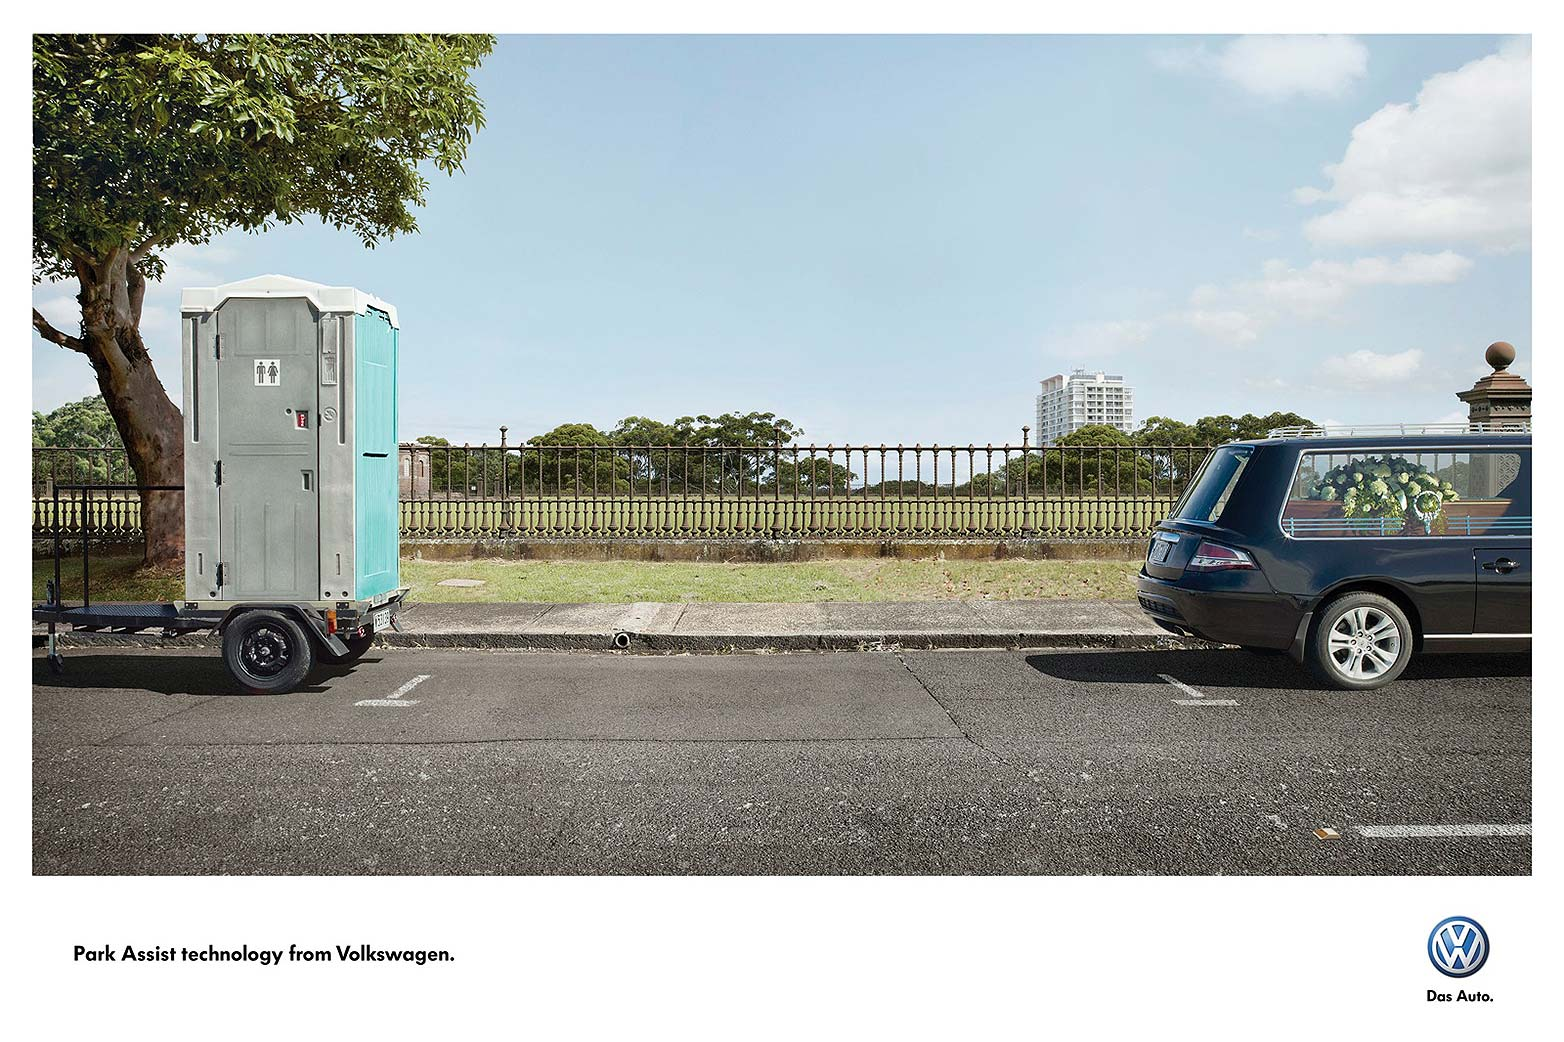 VW Portaloo